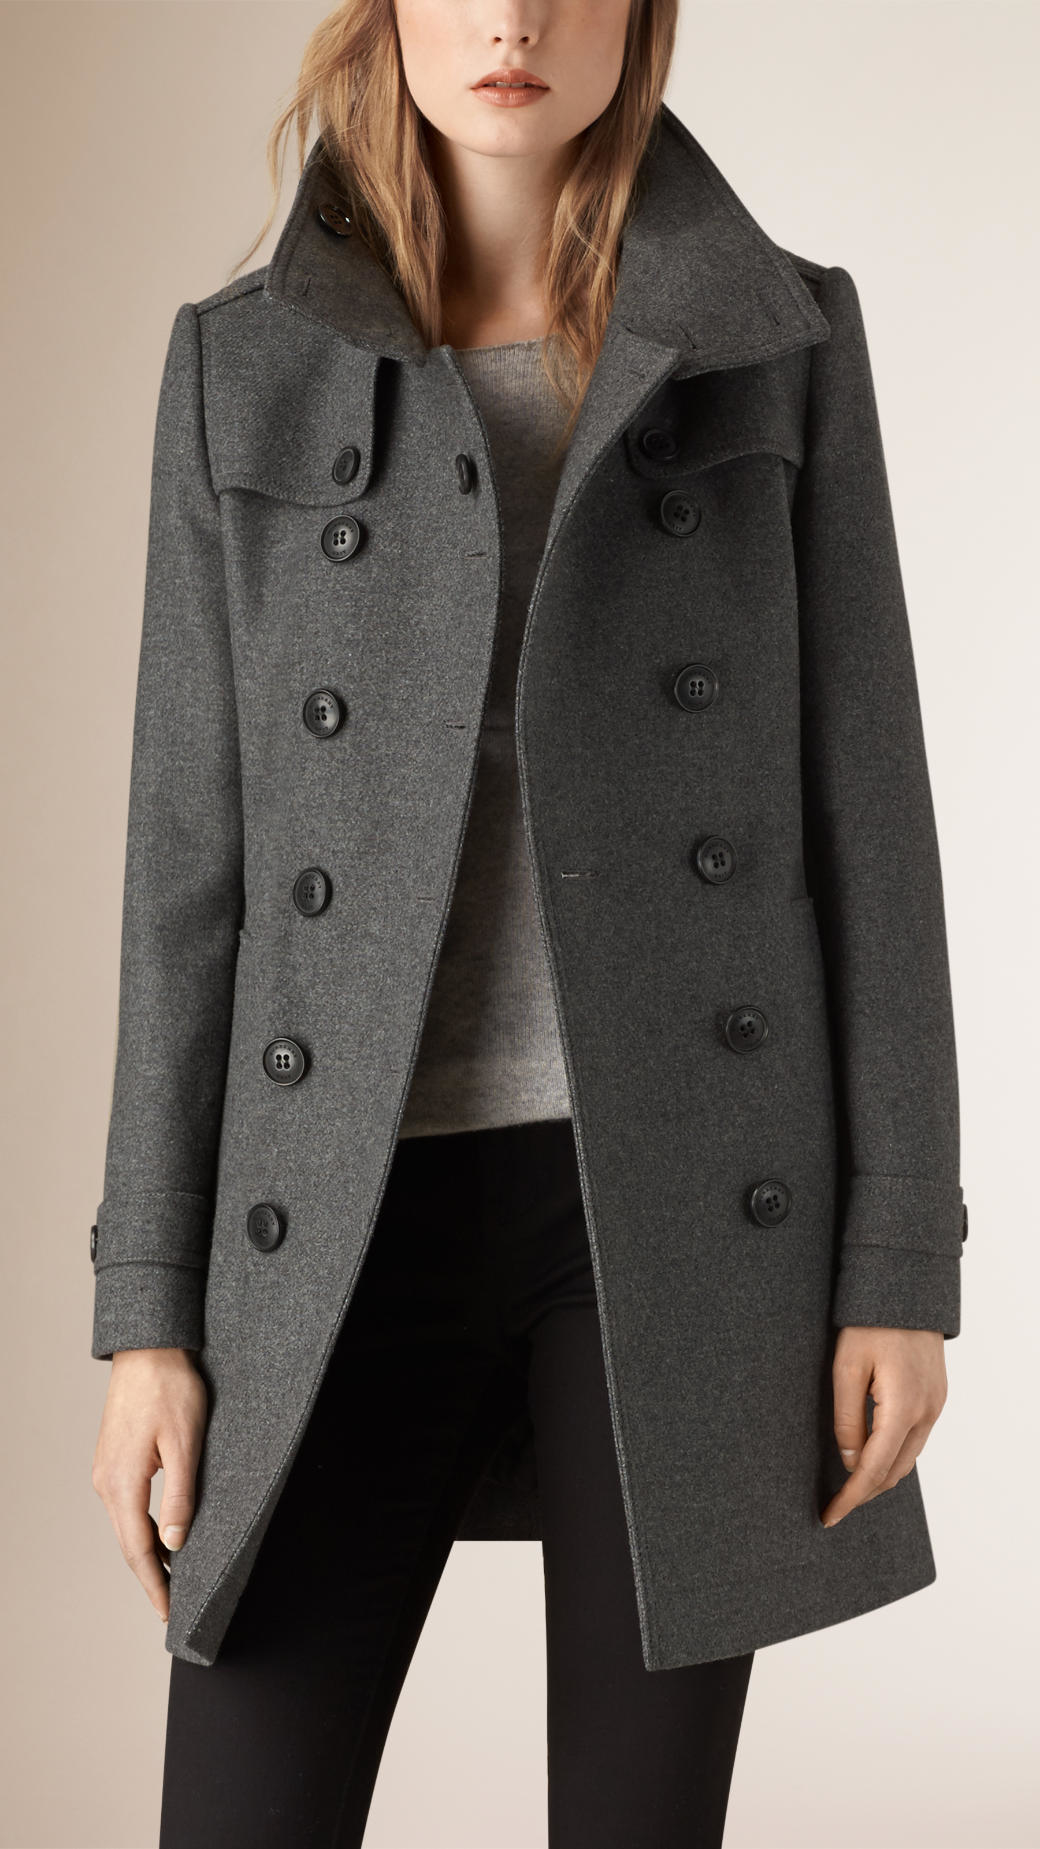 Burberry Wool and Cashmere-Blend Trench Coat in Gray | Lyst